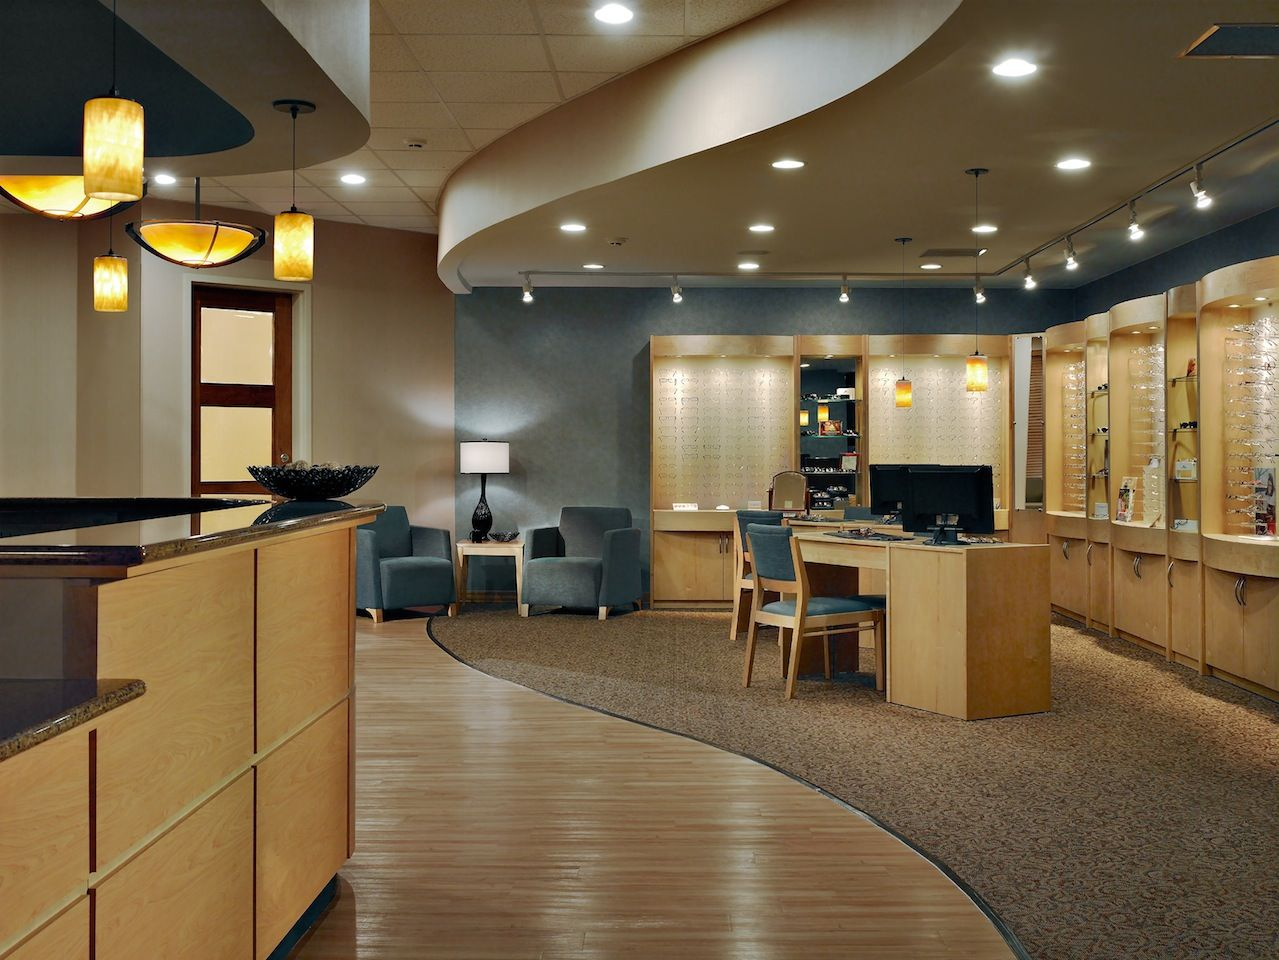 Medical Office Design Ideas interior design Medical Space Design Google Search